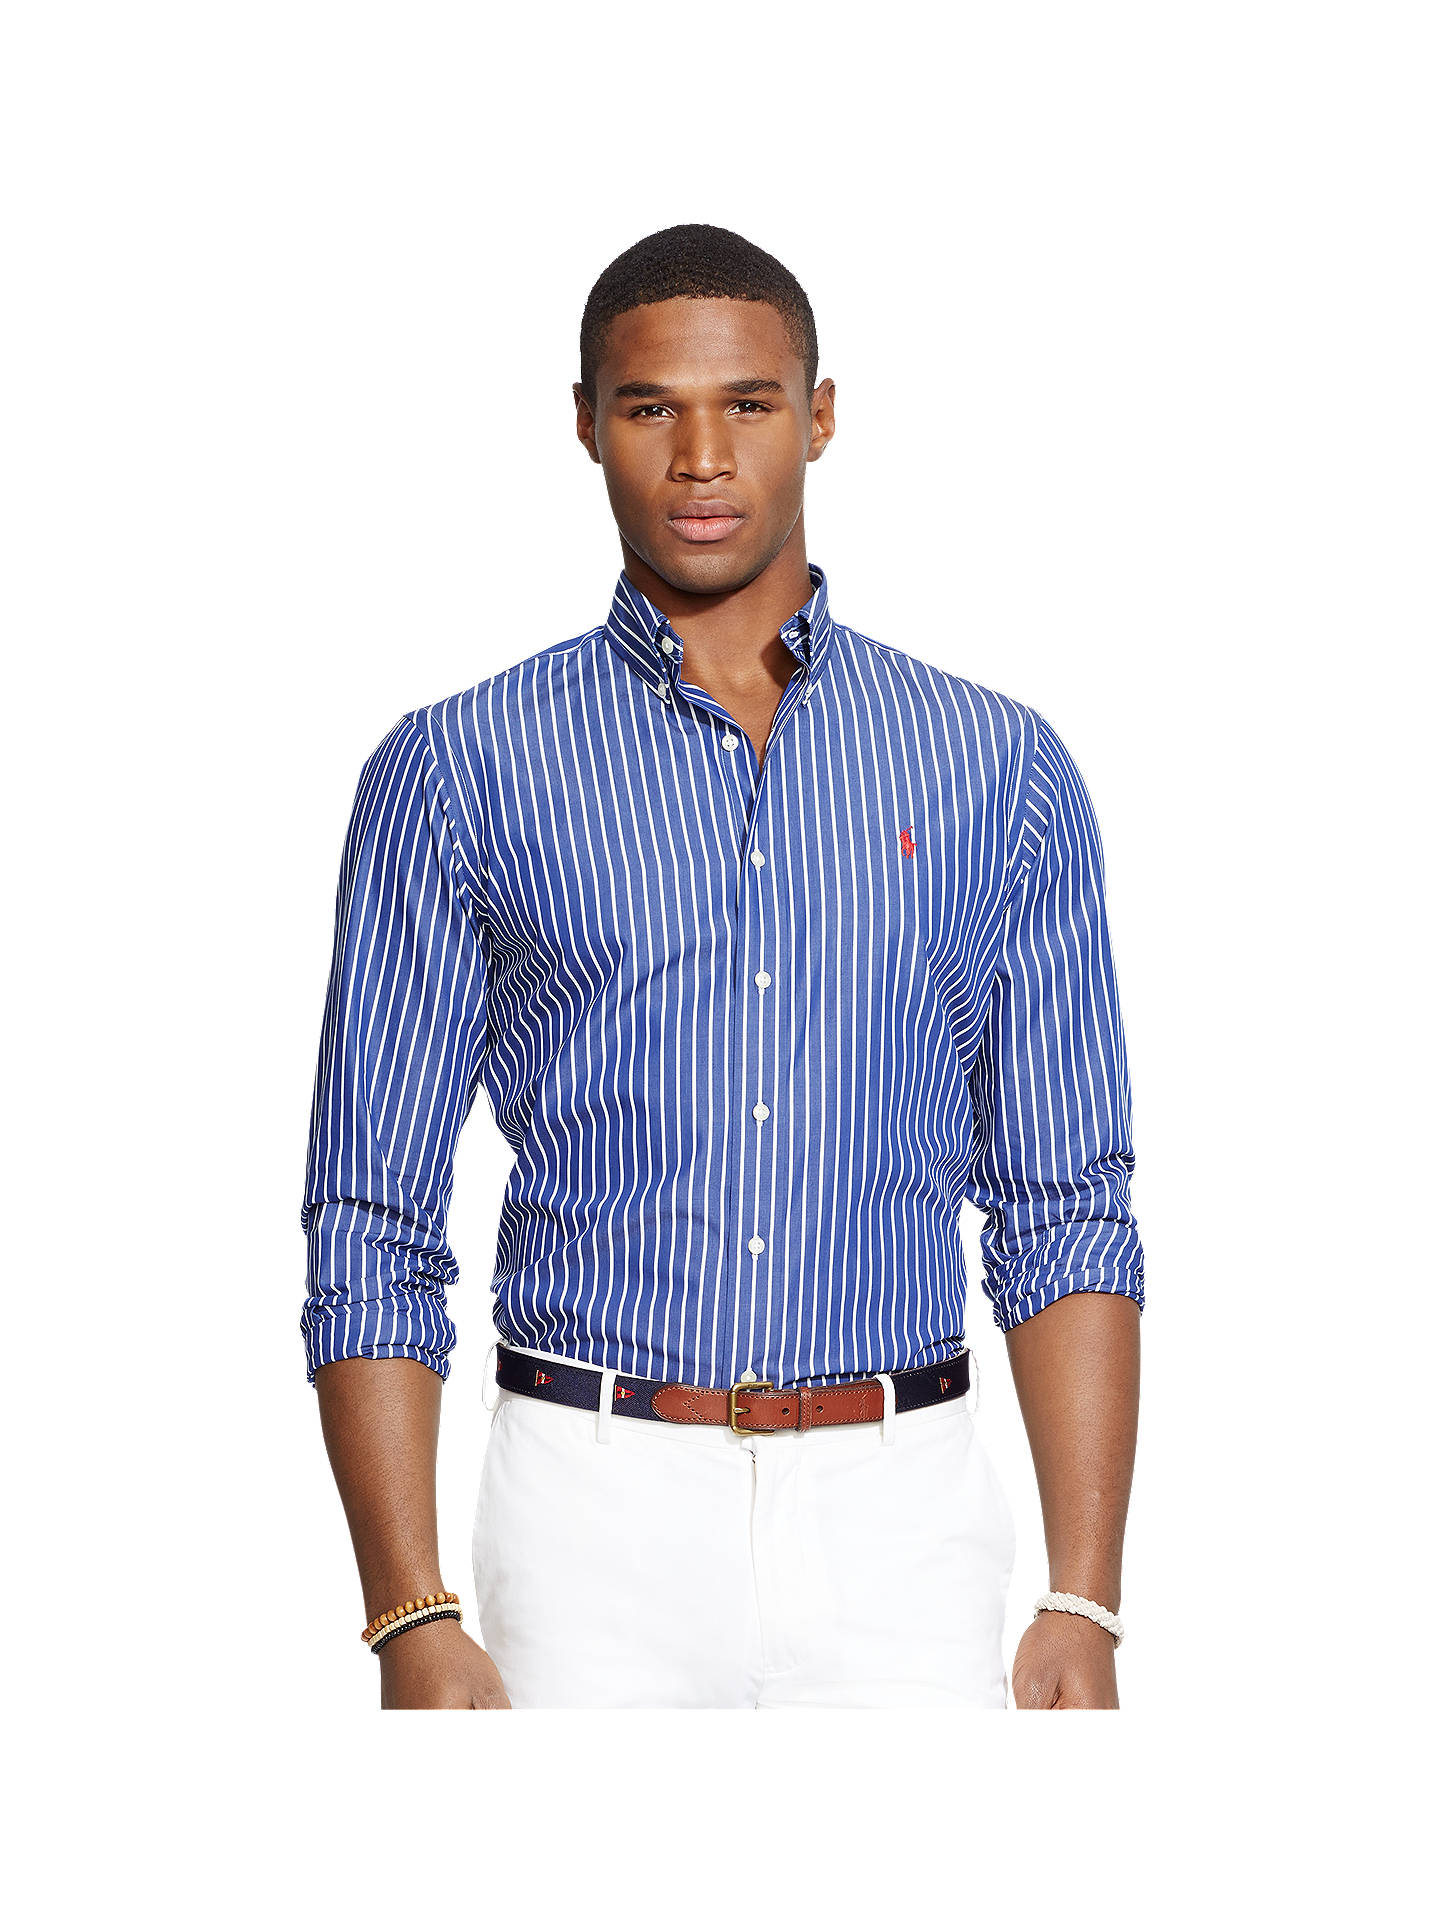 06132ce8 Buy Polo Ralph Lauren Striped Shirt, Navy Stripe, S Online at johnlewis.com  ...